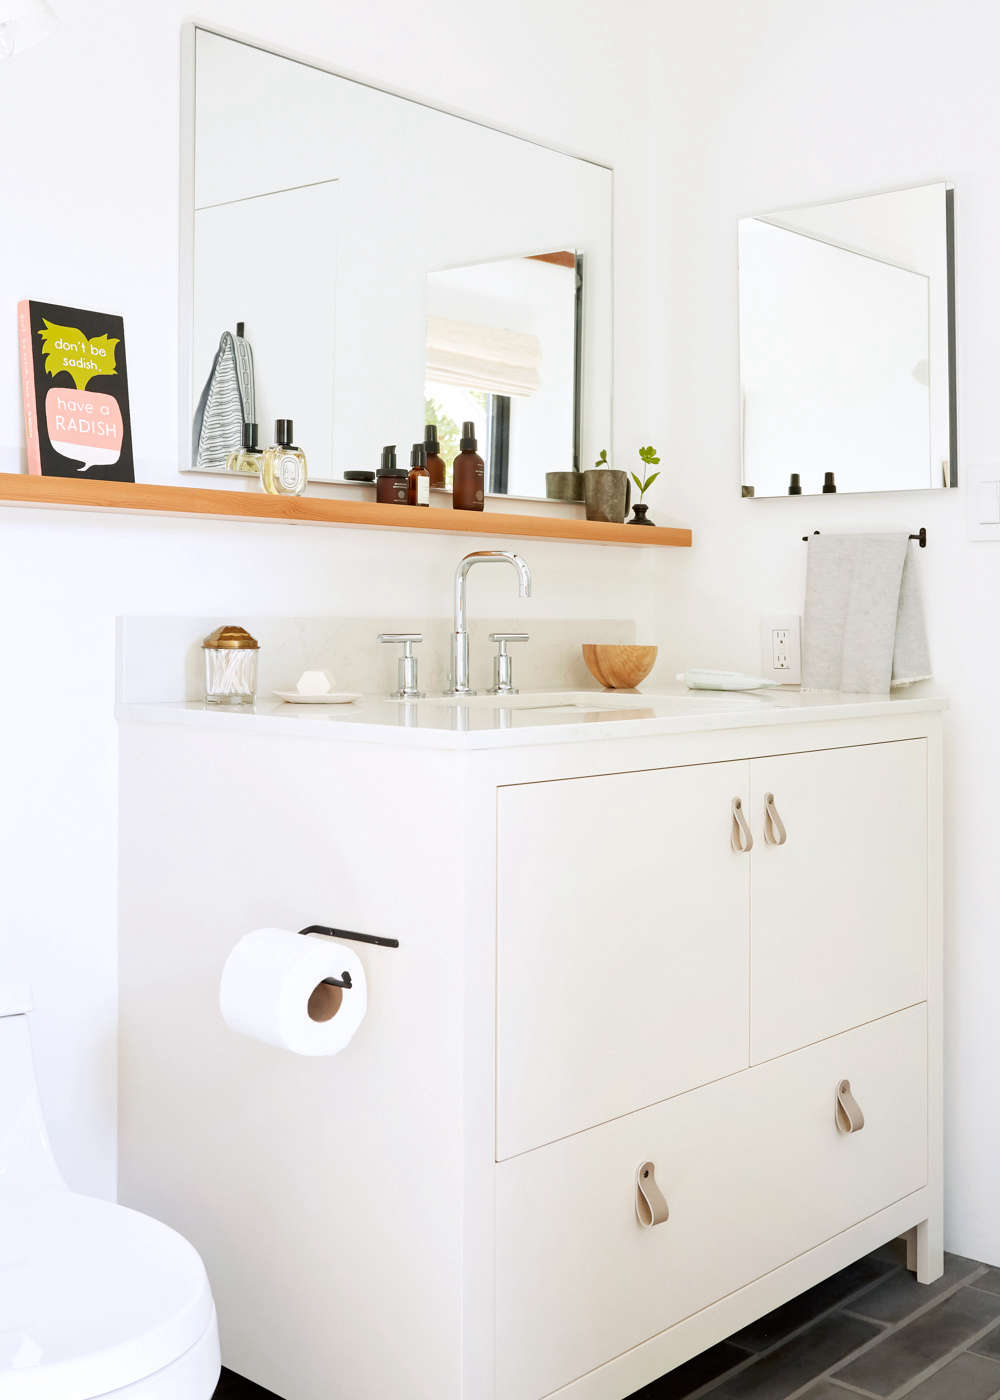 The toilet is theSan Souci K-4007 in white from Kohler, and the Fog Linen Toilet Paper Holder is from Atomic Garden.The custom Douglas fir shelves (over the vanity and tub) were made by Christopher Faiss of Born and Built.